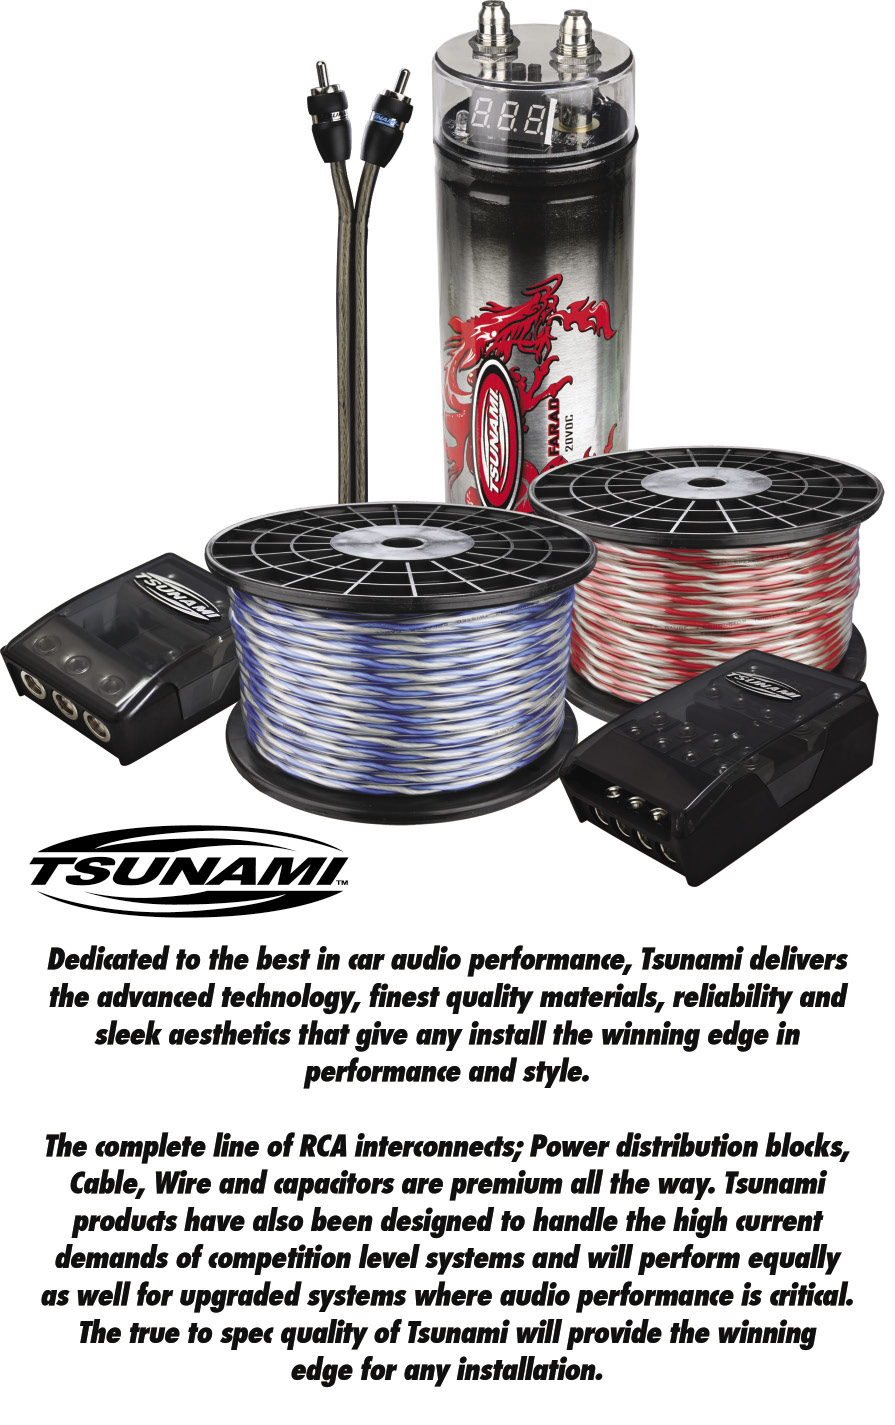 medium resolution of wiring distribution buyer s guide september 2012 tsunami installation kit